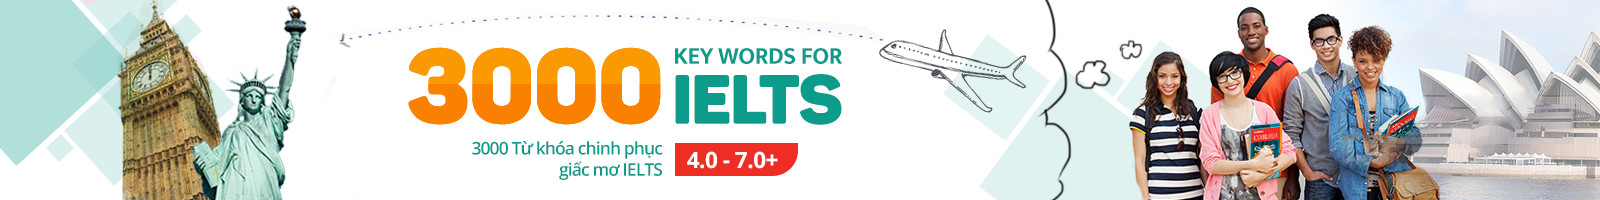 3000 KEY WORDS FOR IELTS